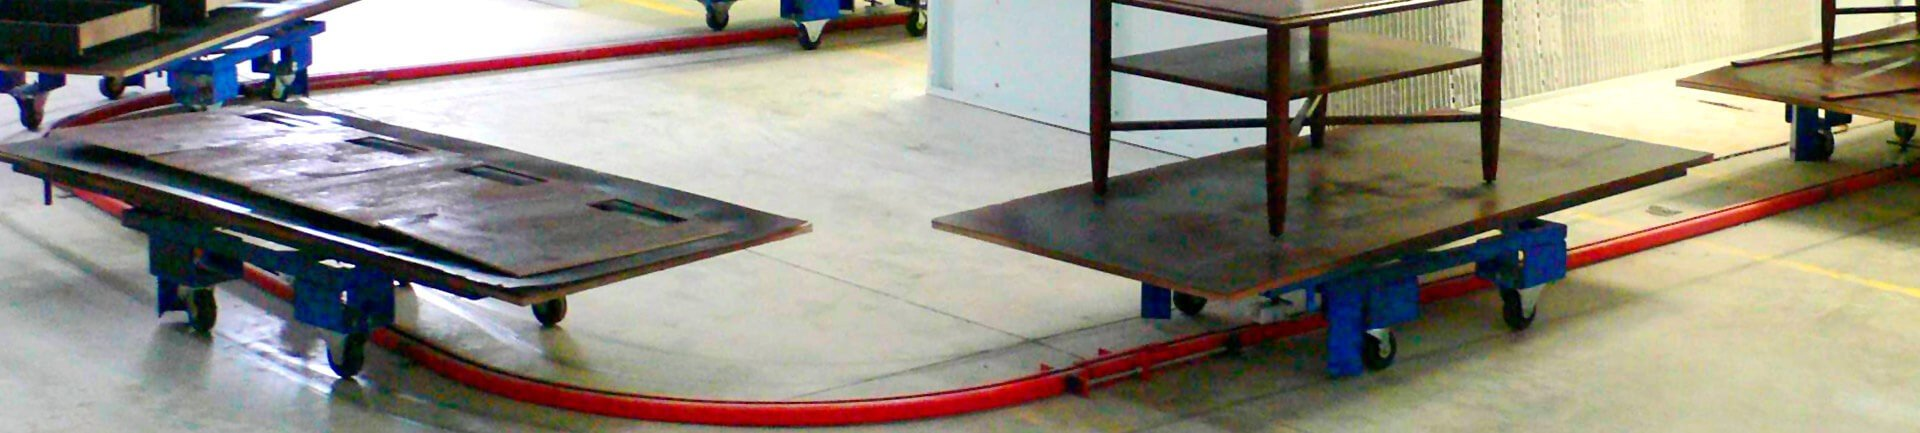 On floor or in floor towline conveyor system carts have rotating top platens